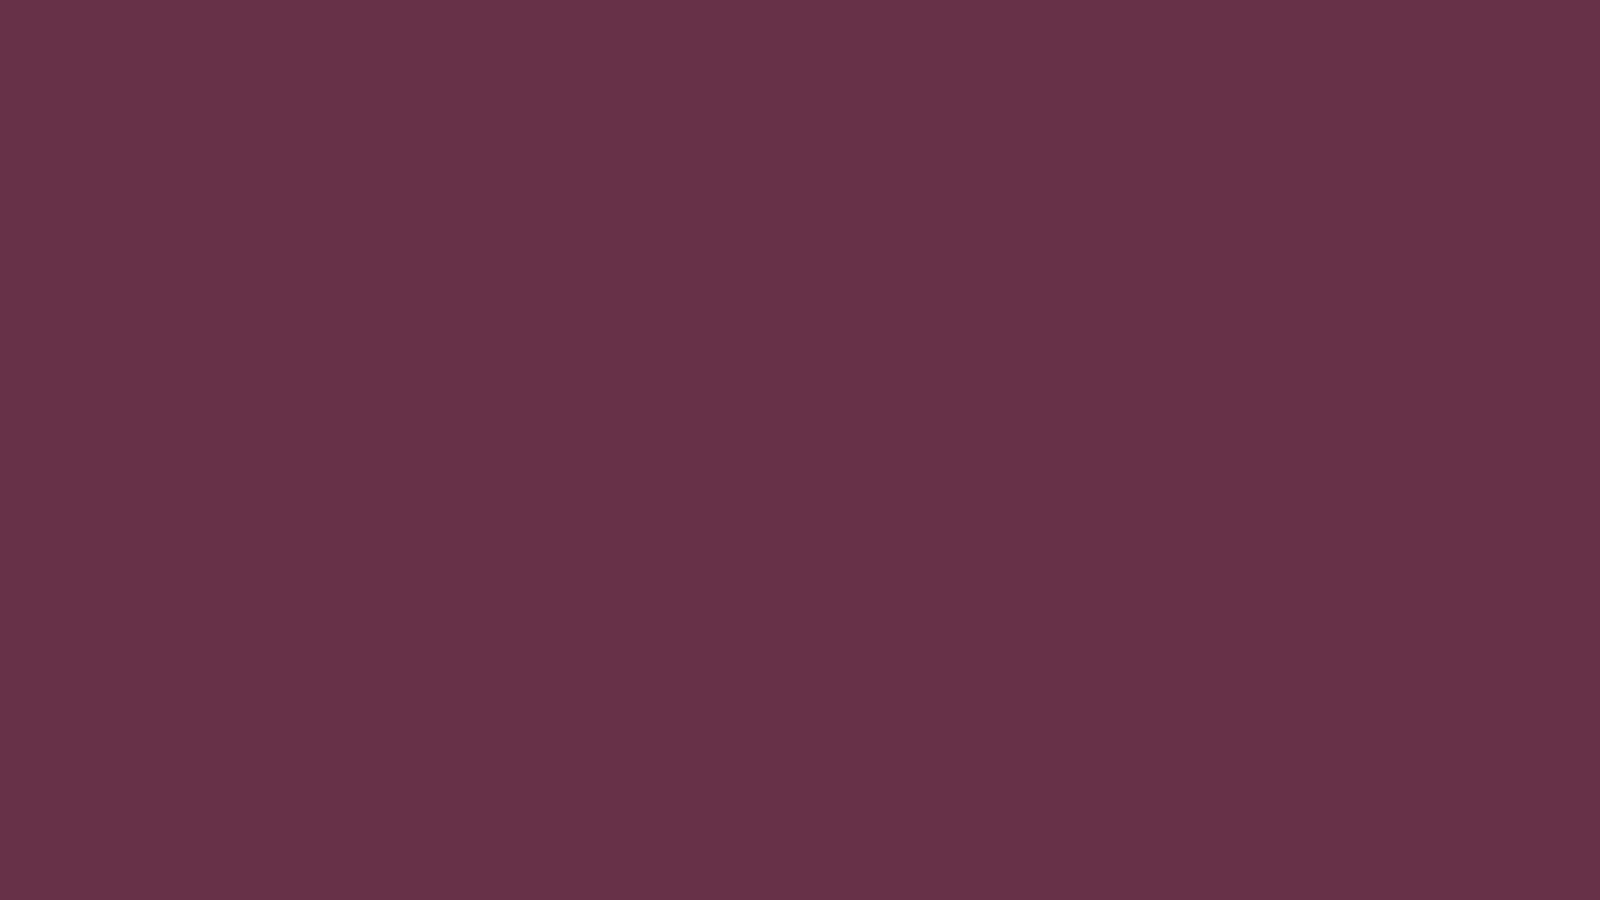 1600x900 Old Mauve Solid Color Background